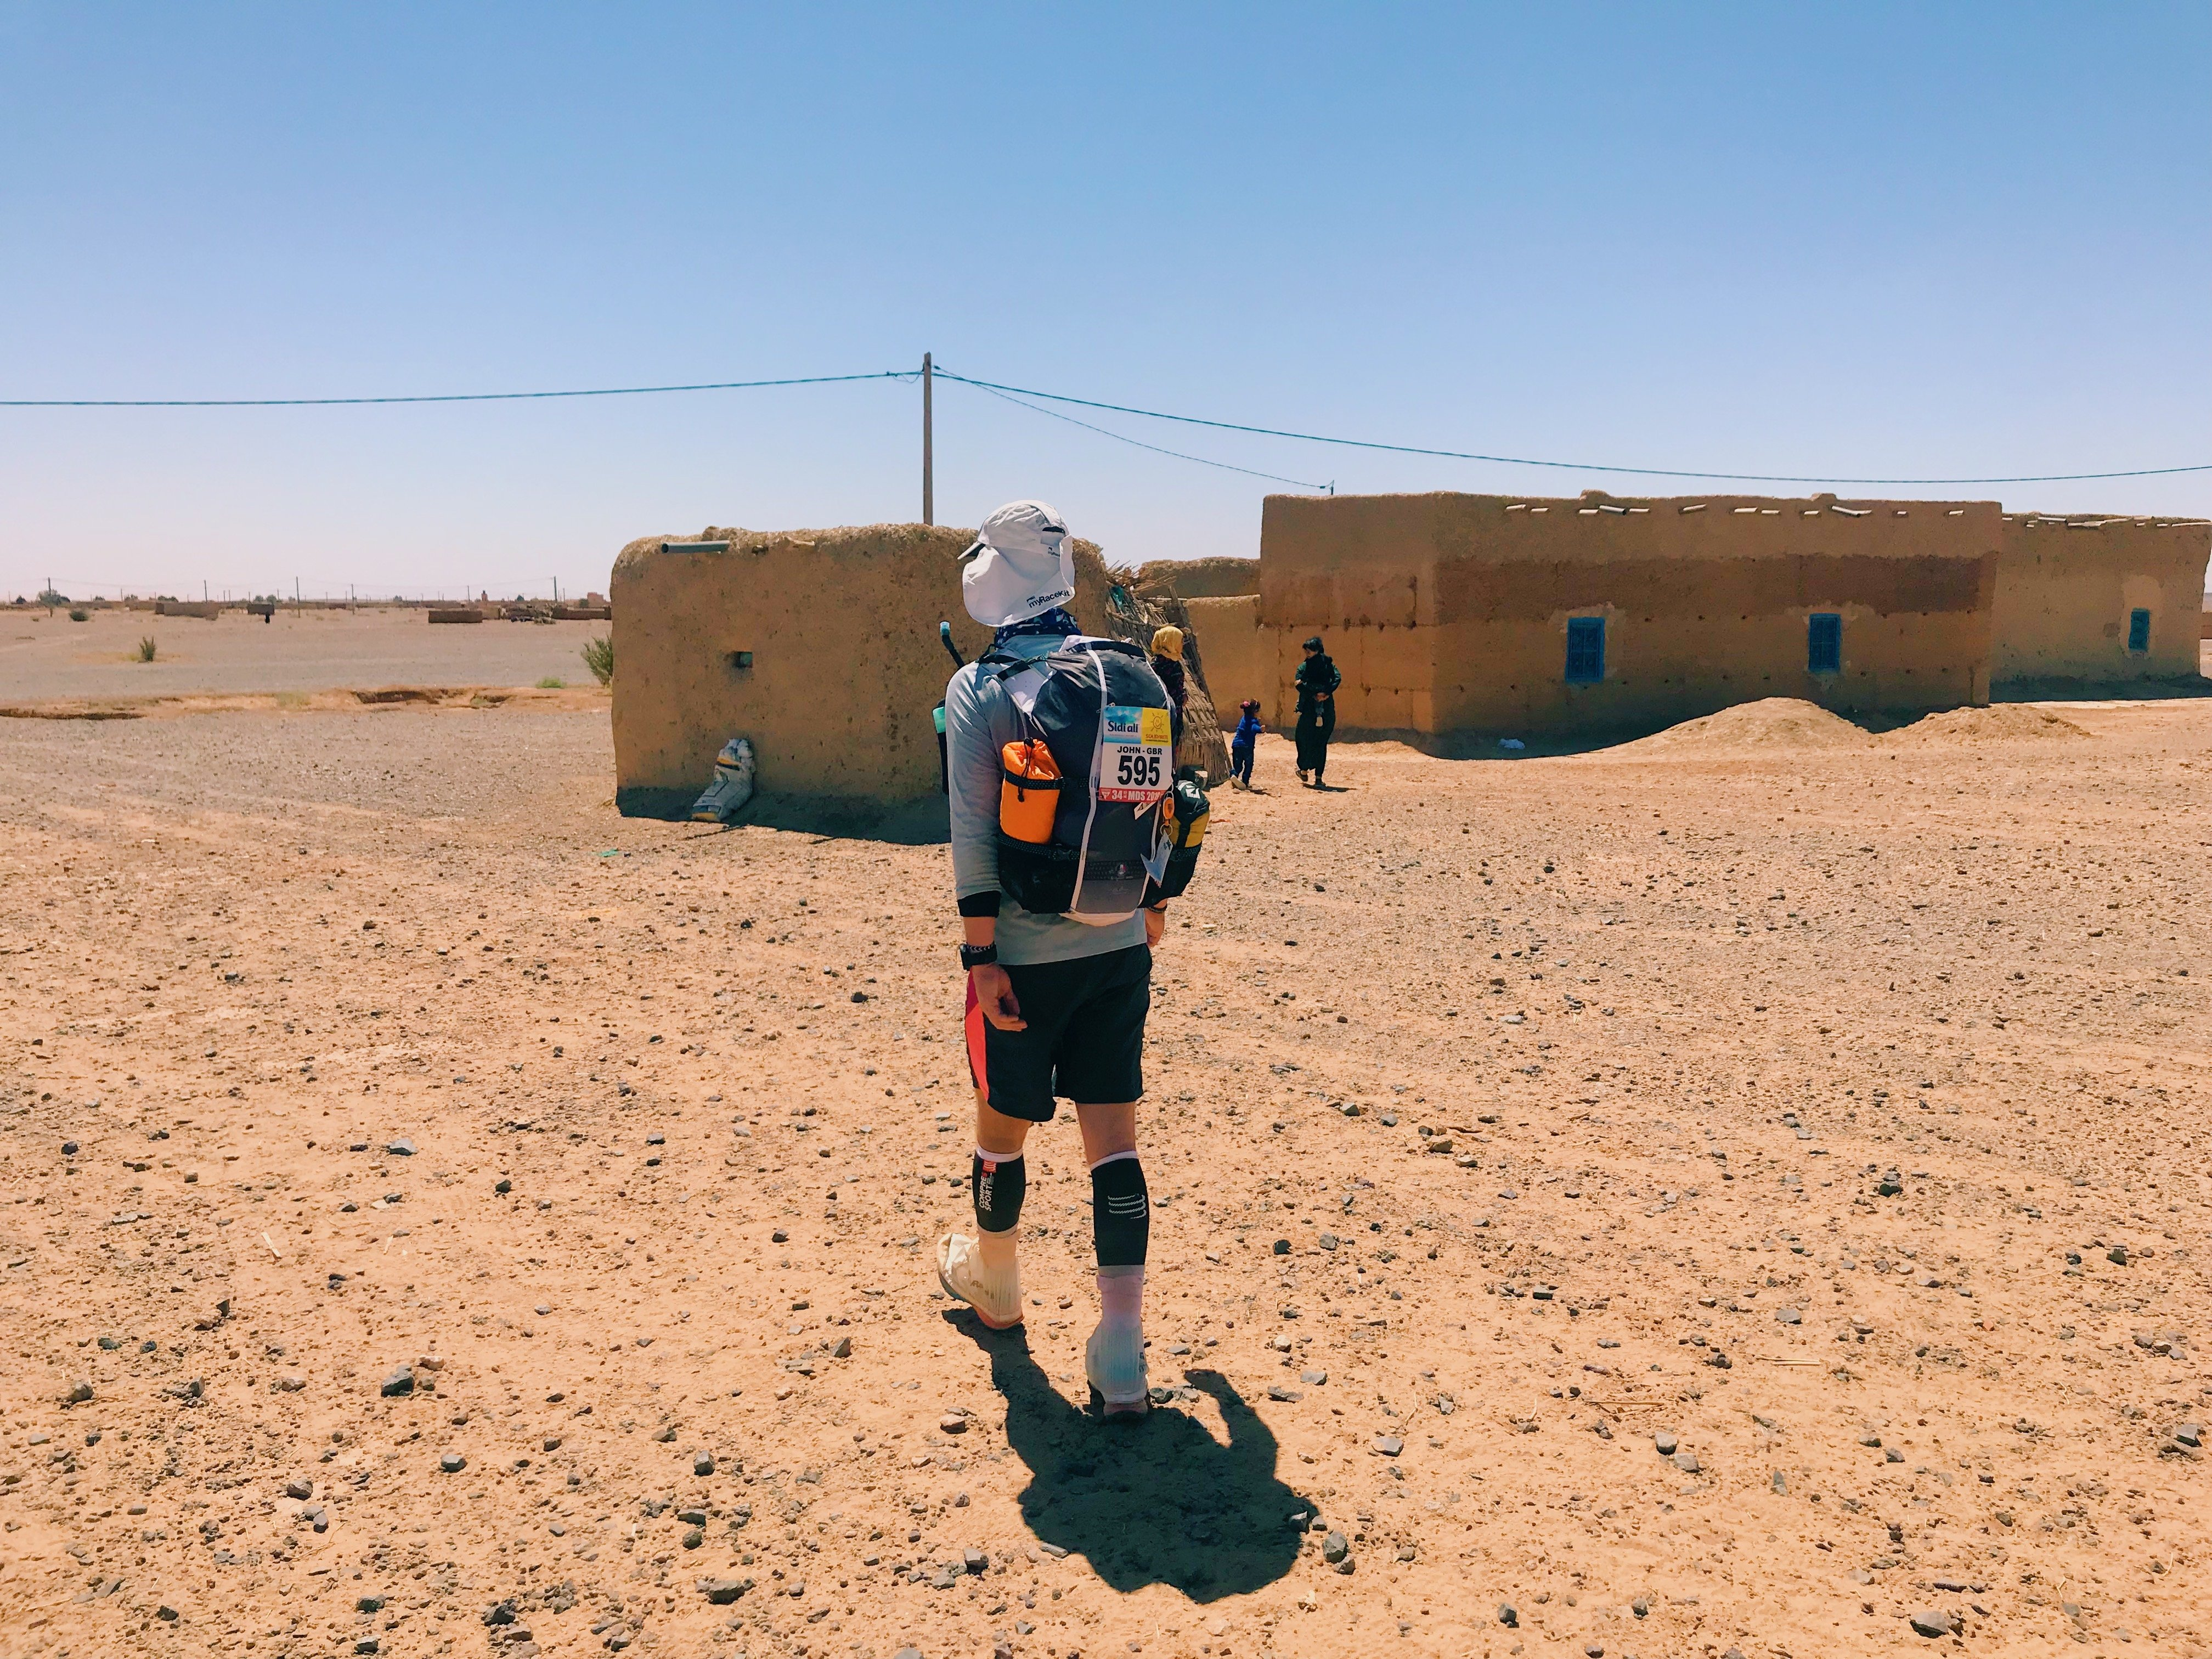 A village during Marathon Des Sables